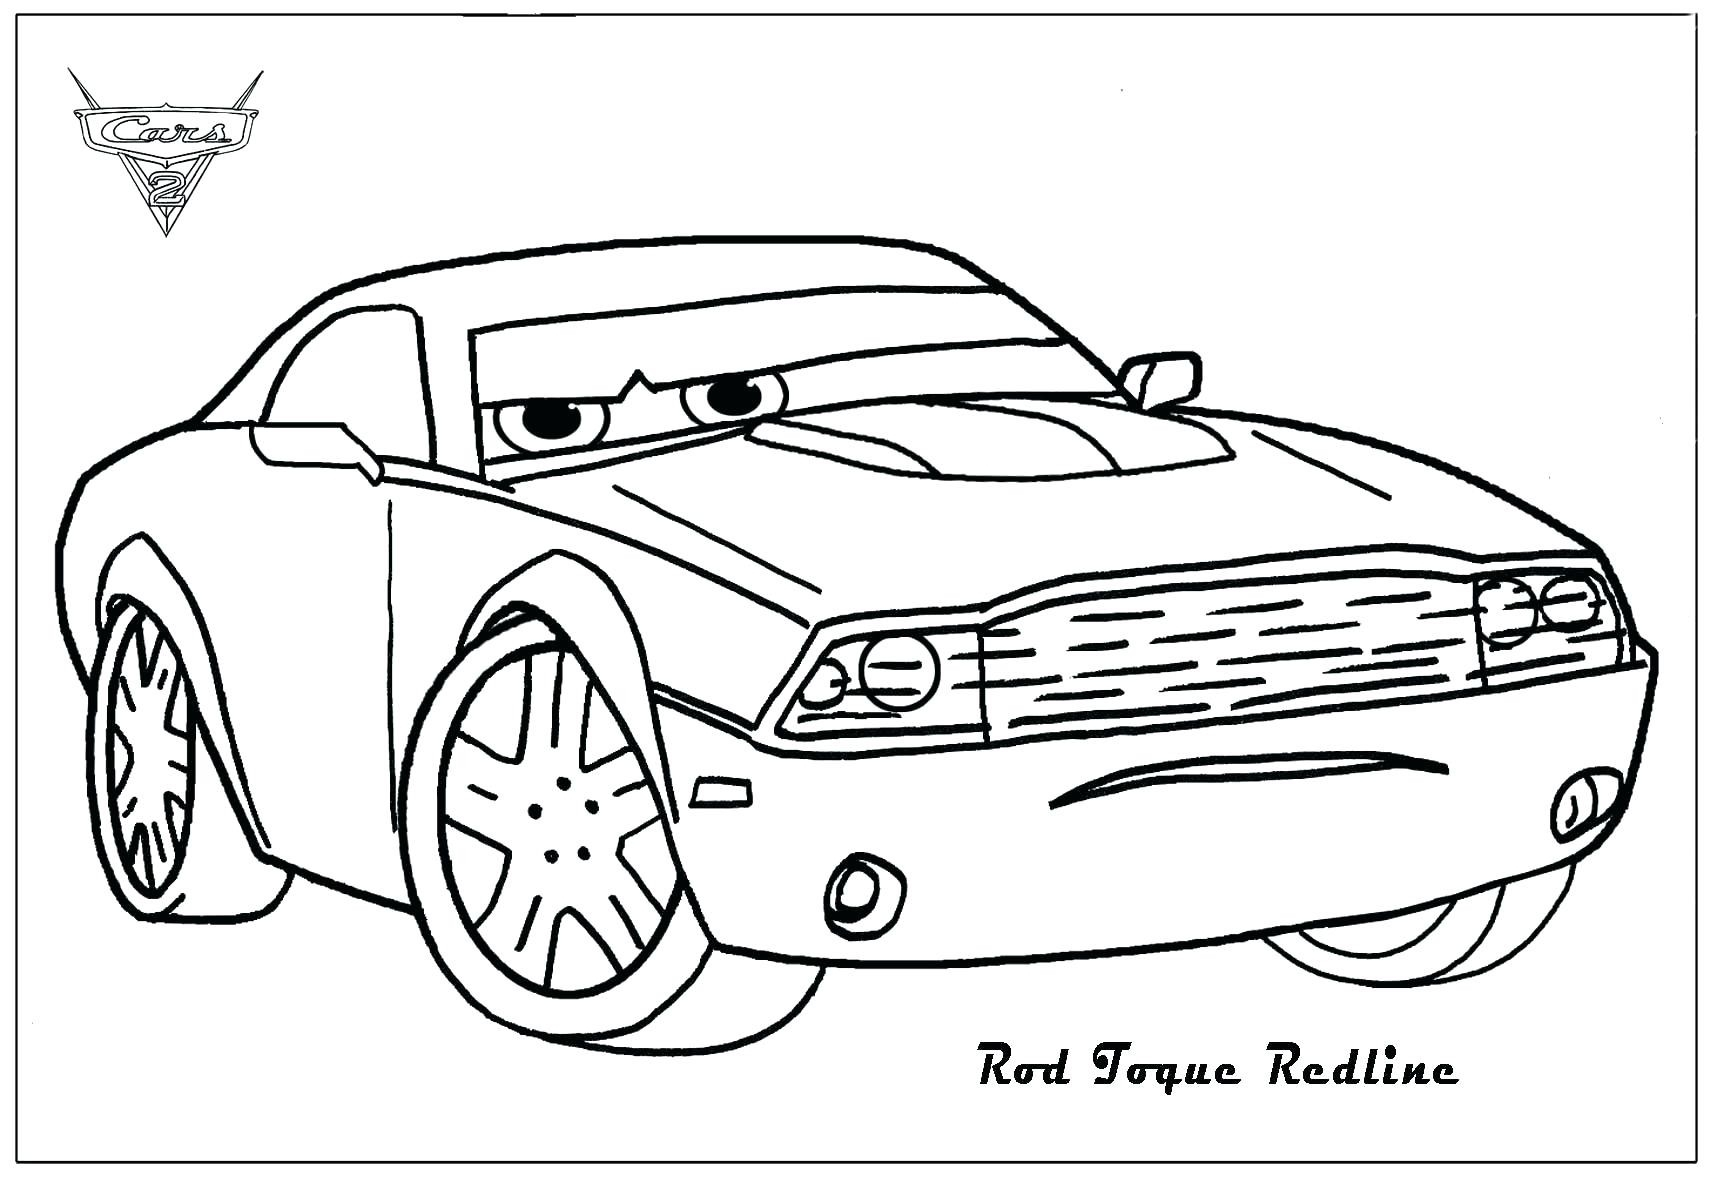 Coloring Pages the Cars Best Cars Movie Coloring Pages to Print Gallery Of Car Coloring Pages Disney Cars the Movie to Print Grig3 Download